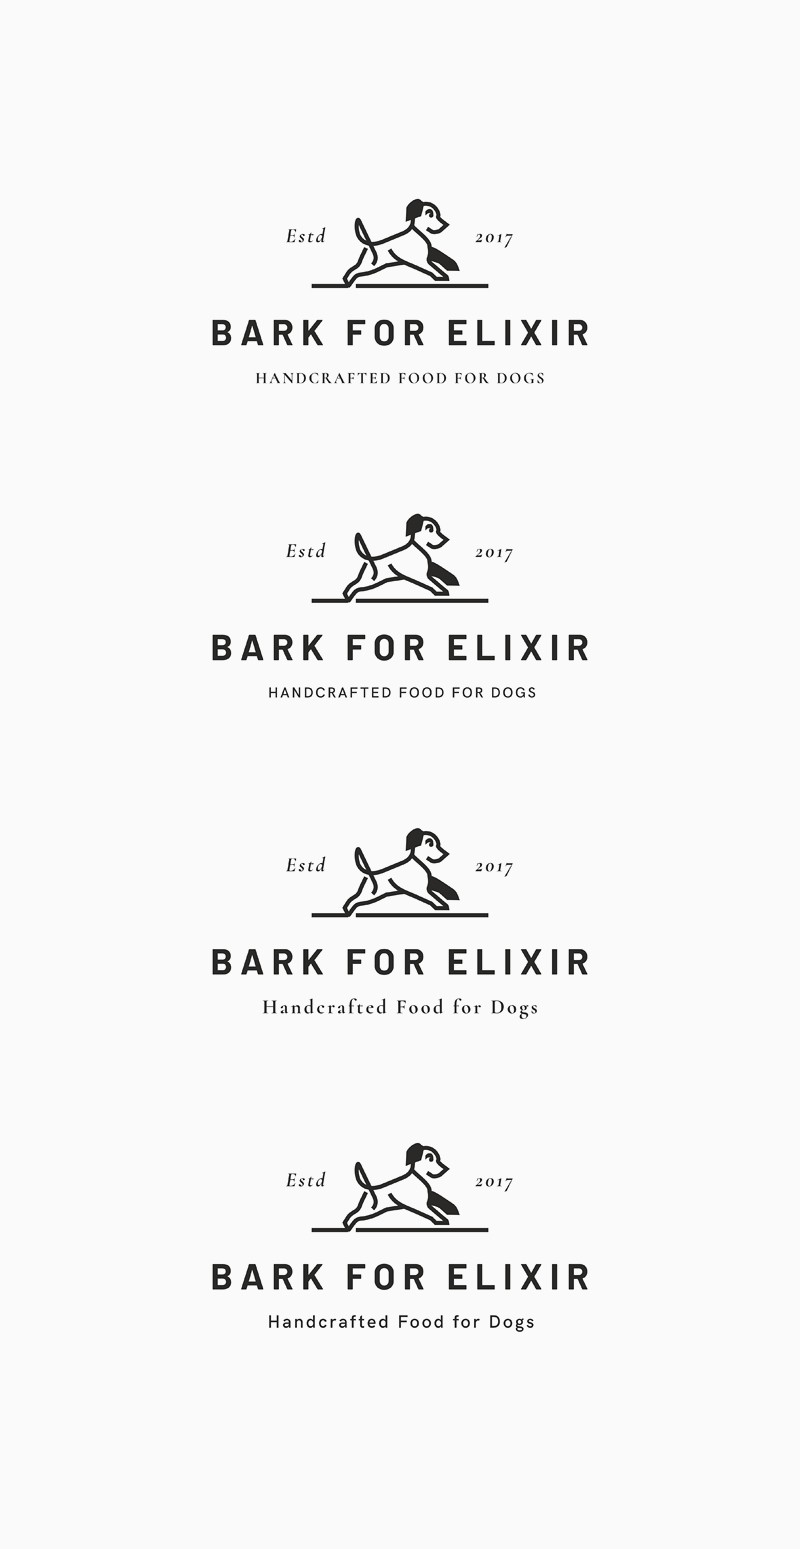 Product label for handcrafted treats for pets